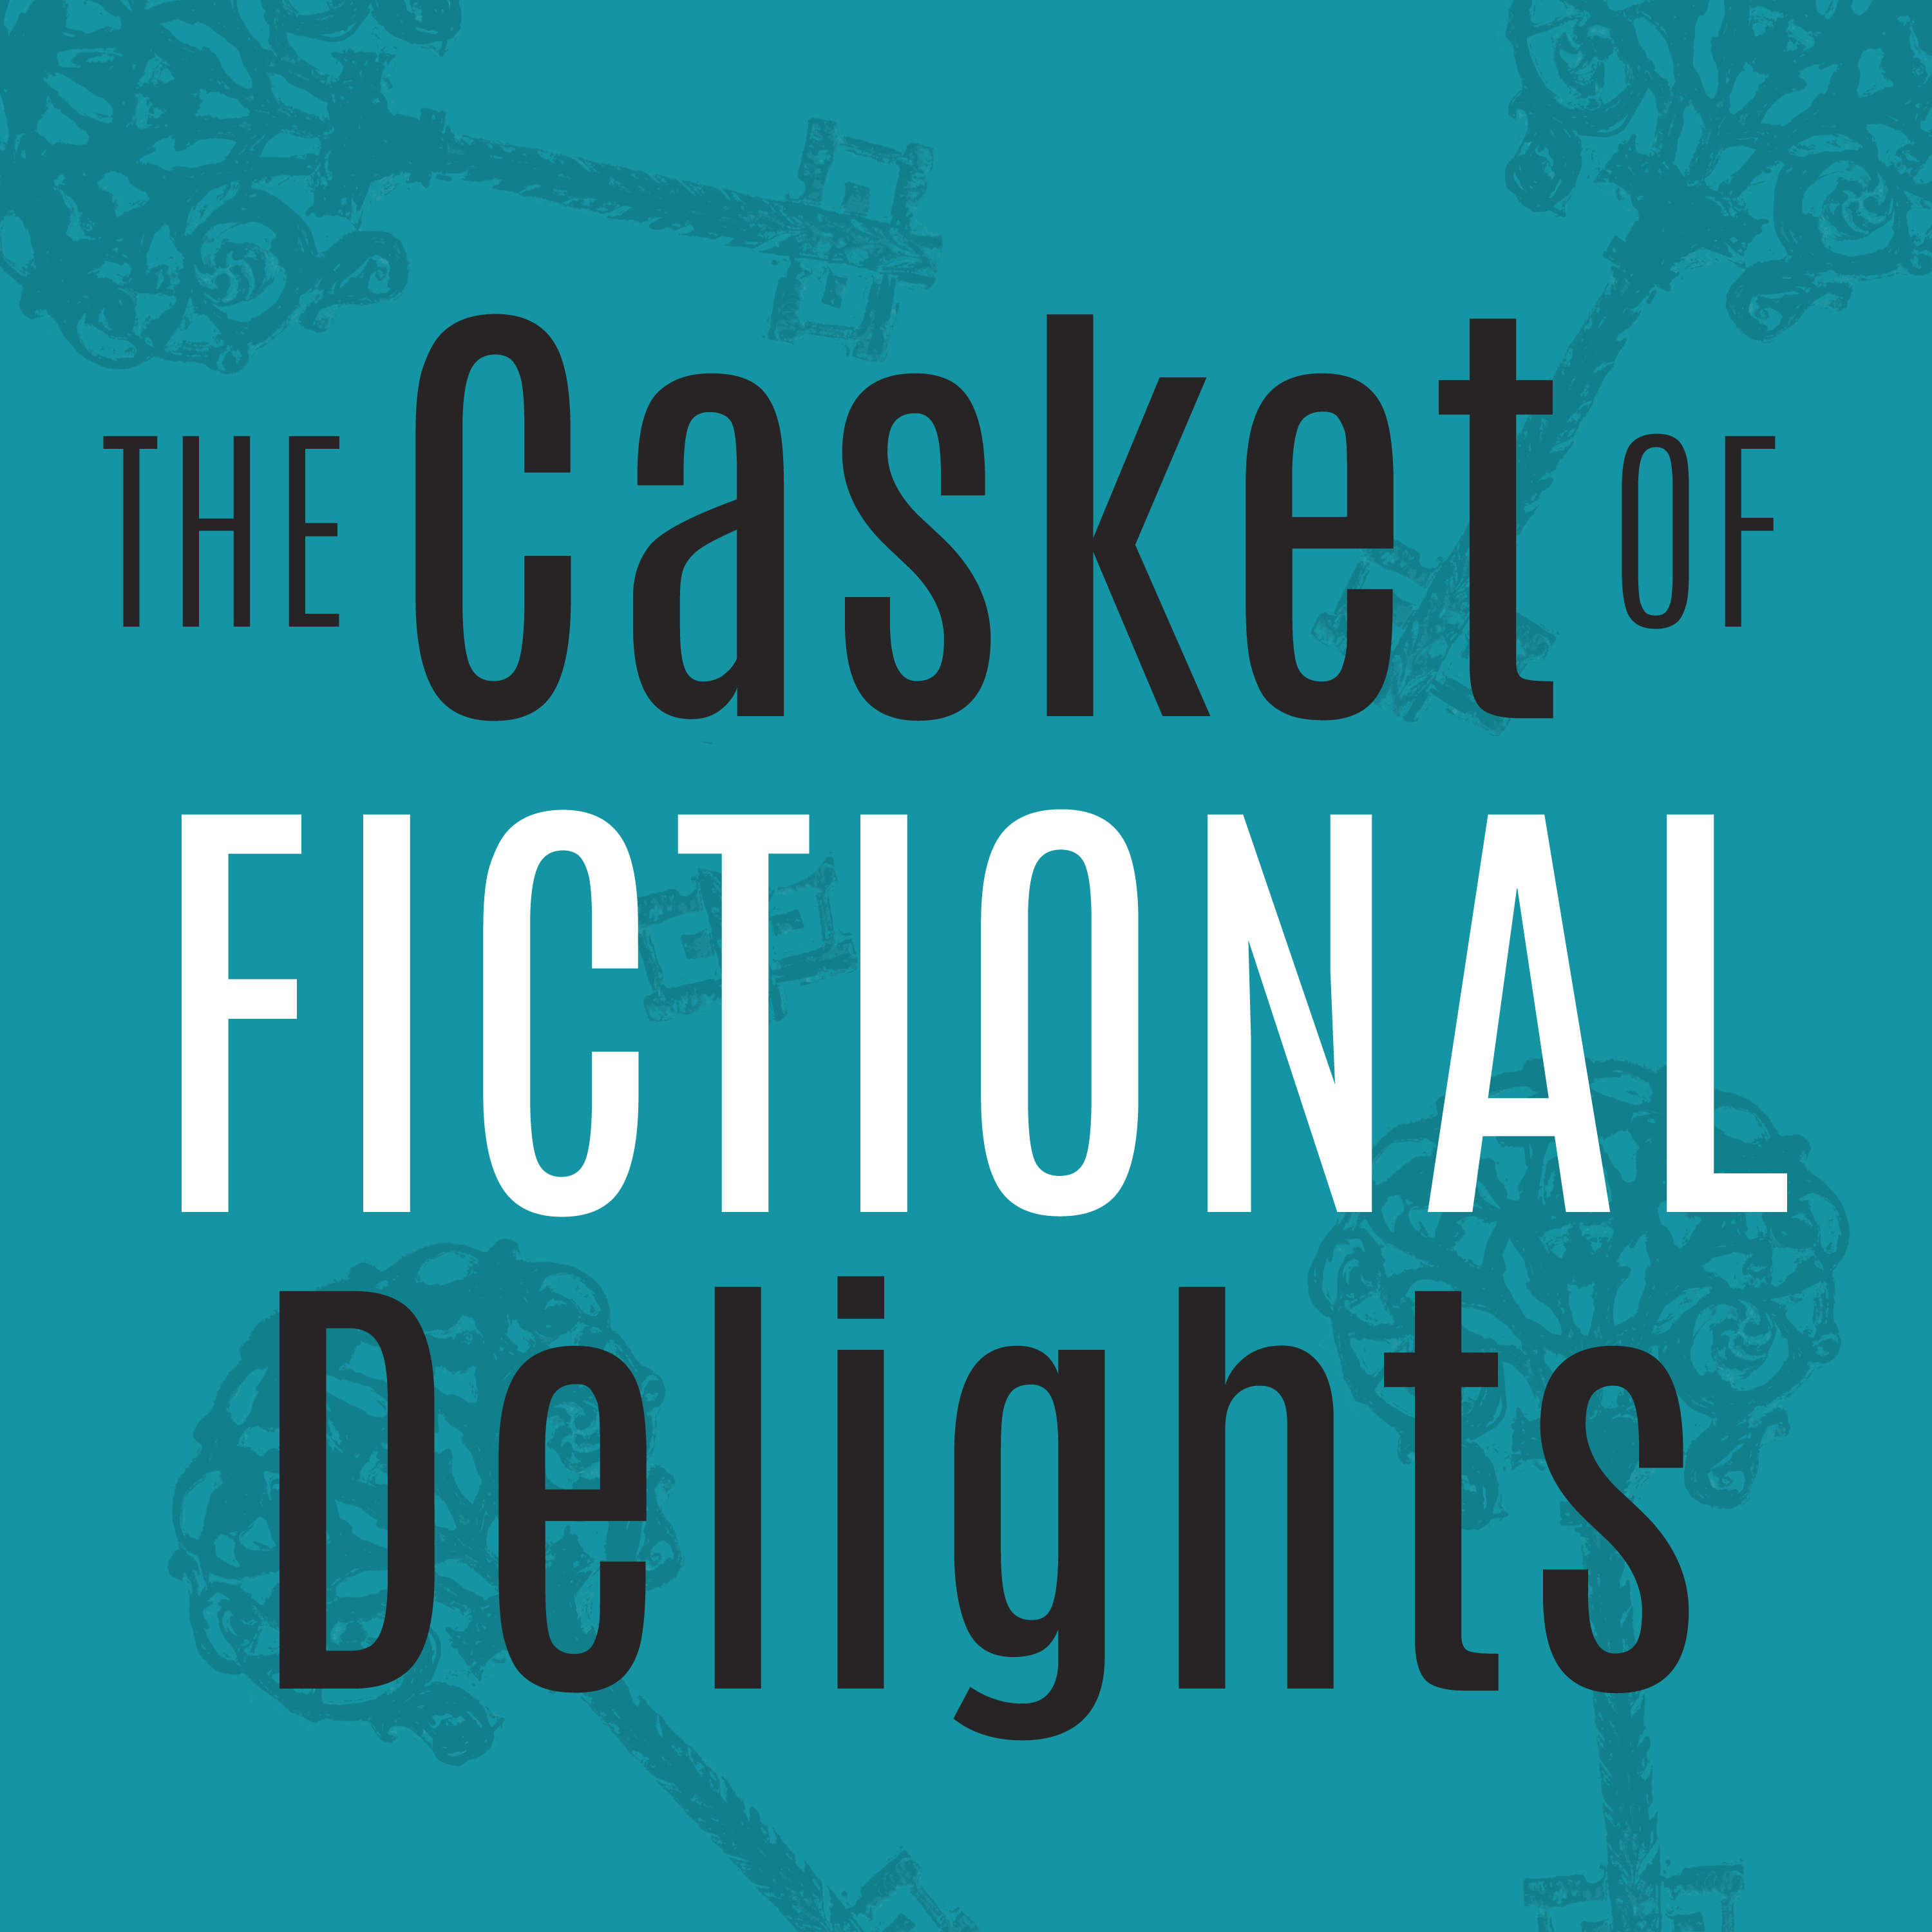 The Casket - New Short Stories